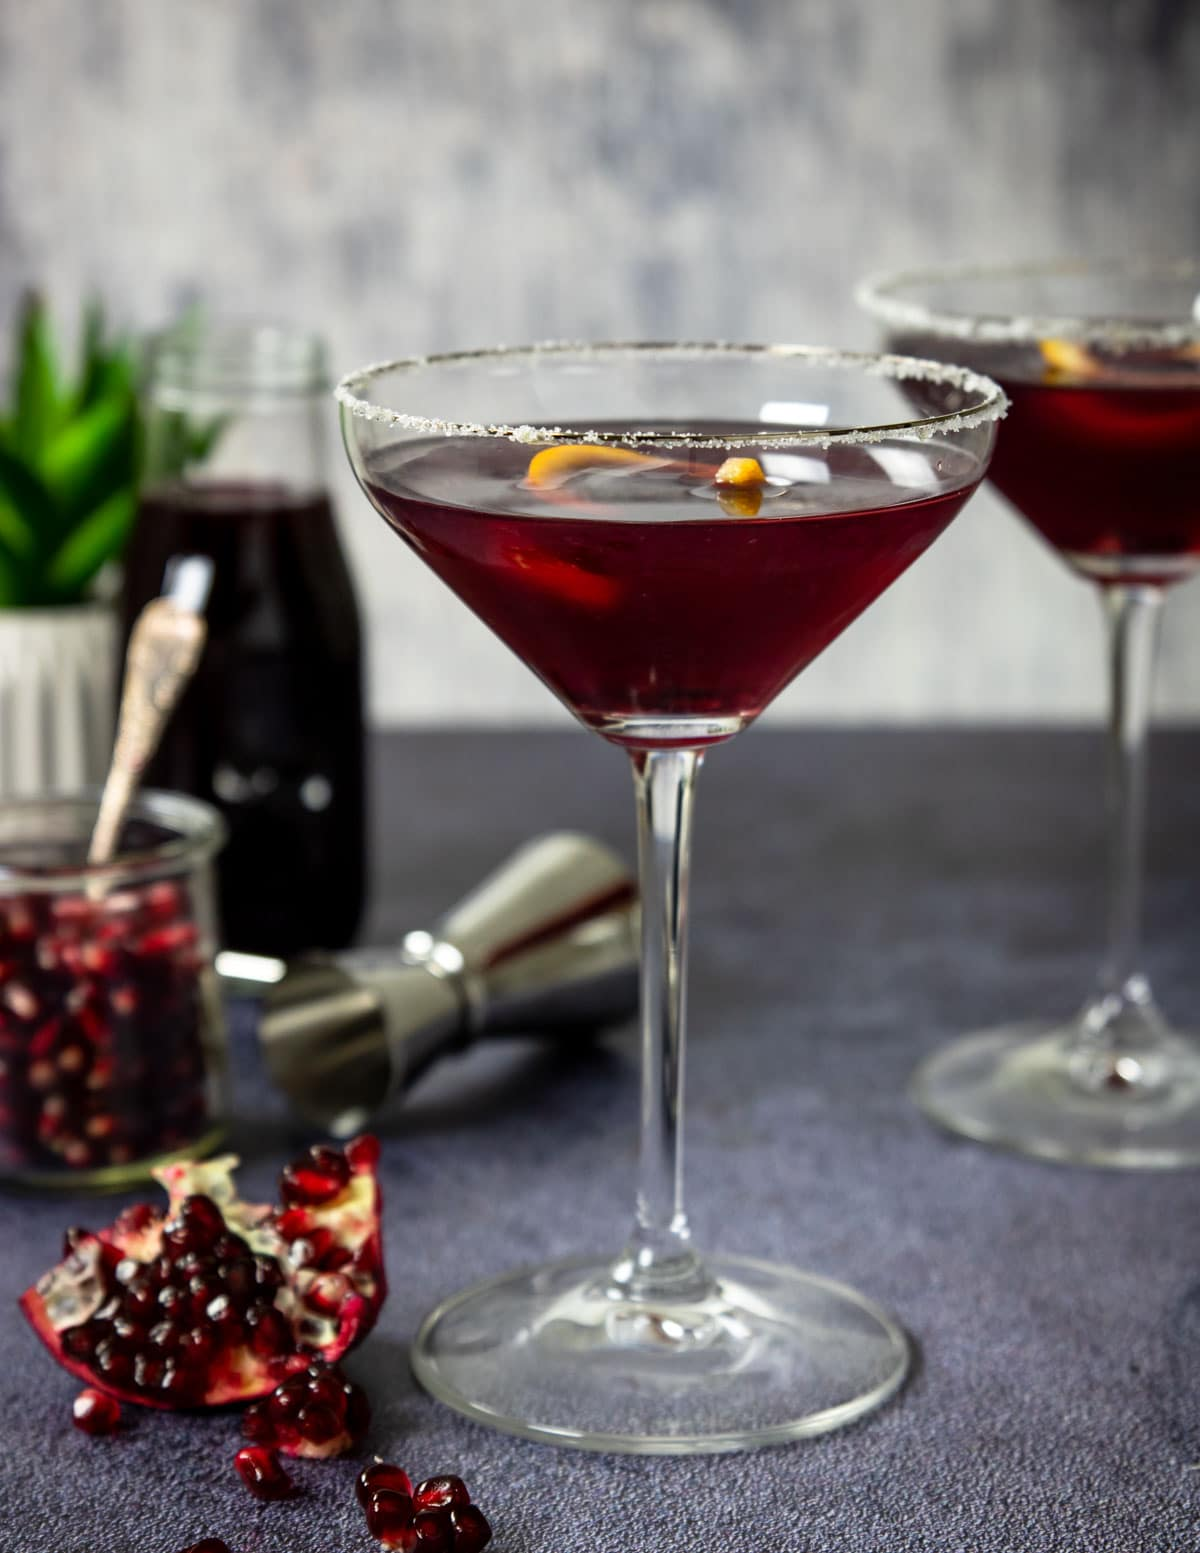 pomegranate martini with a sugar rim and pomegranate arils on the table